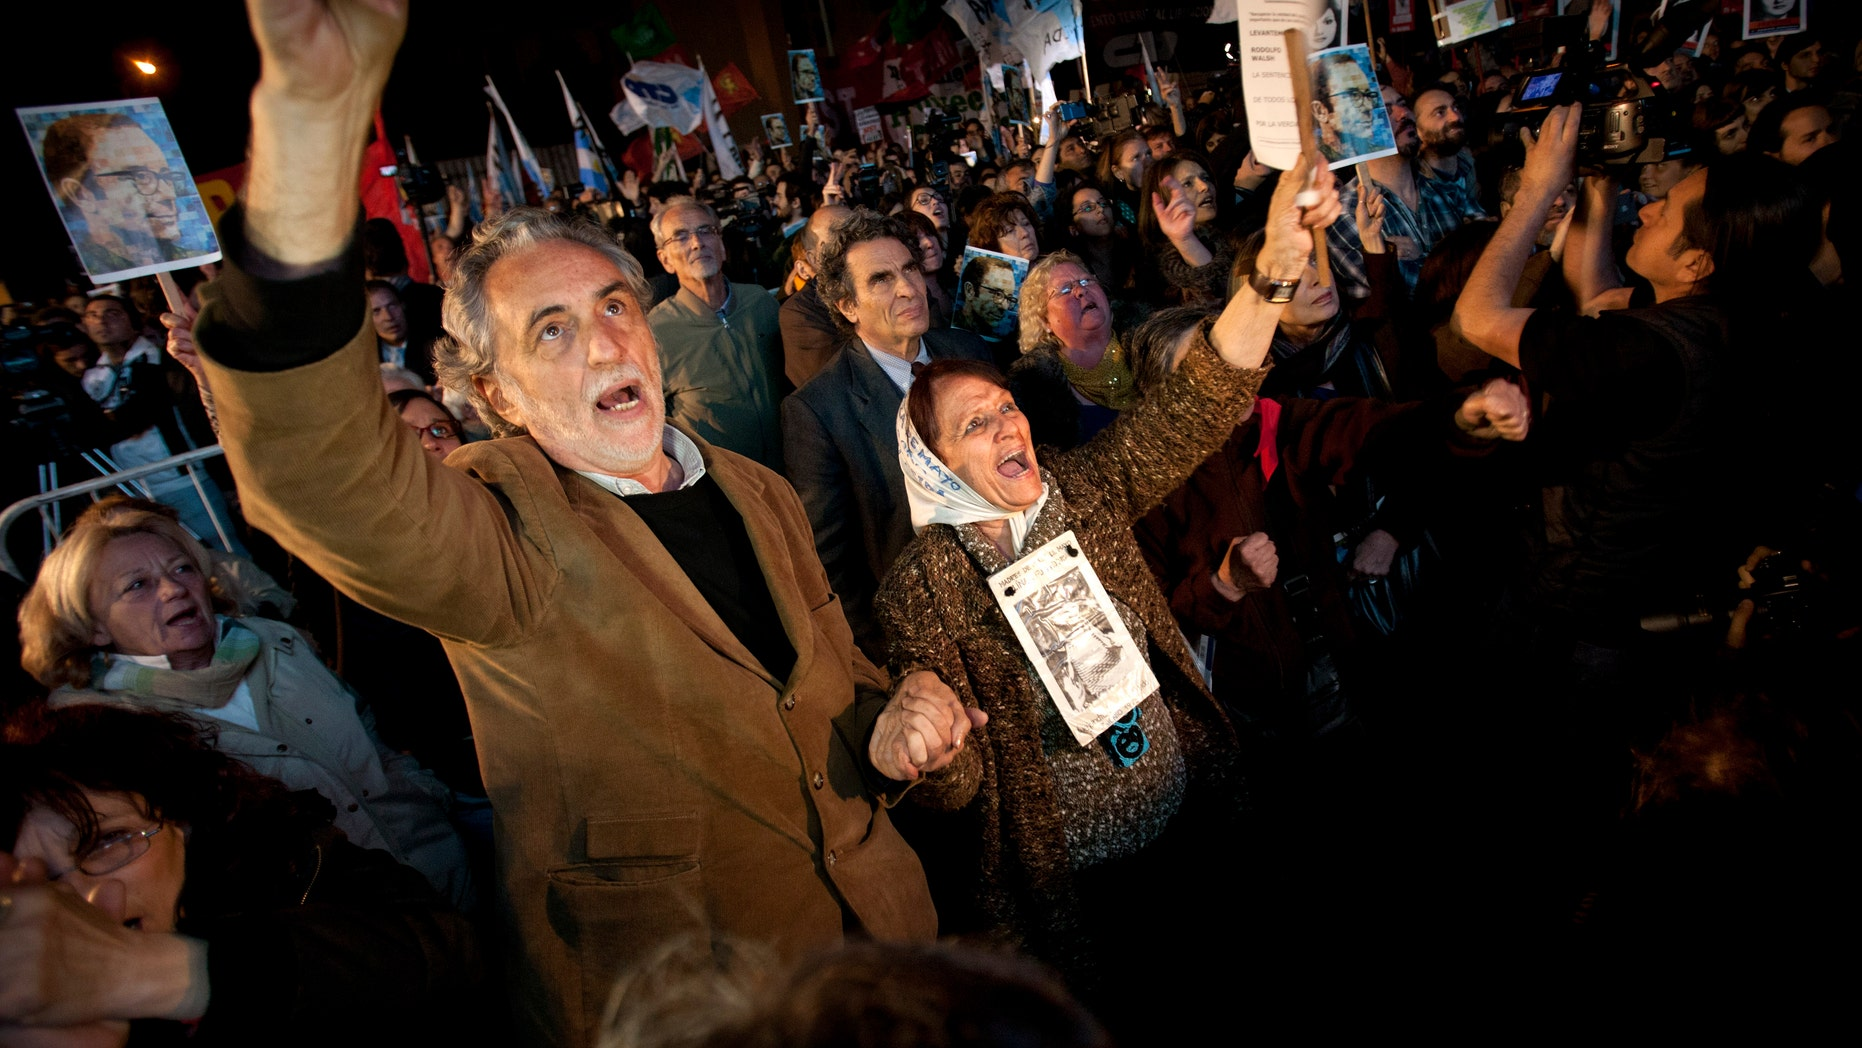 Human right activists, among them Mothers of Plaza de Mayo member Tati Almeida, second from left, celebrate after a trial against former military and police officials in Buenos Aires, Argentina, Wednesday, Oct. 26, 2011. A court in Argentina has sentenced 12 former military and police officials to life in prison for crimes against humanity committed during the country's 1976-1983 dictatorship. The men were convicted of kidnapping, torturing and killing leftist dissidents at a torture center called the Navy Mechanics School. (AP Photo/Victor R. Caivano)